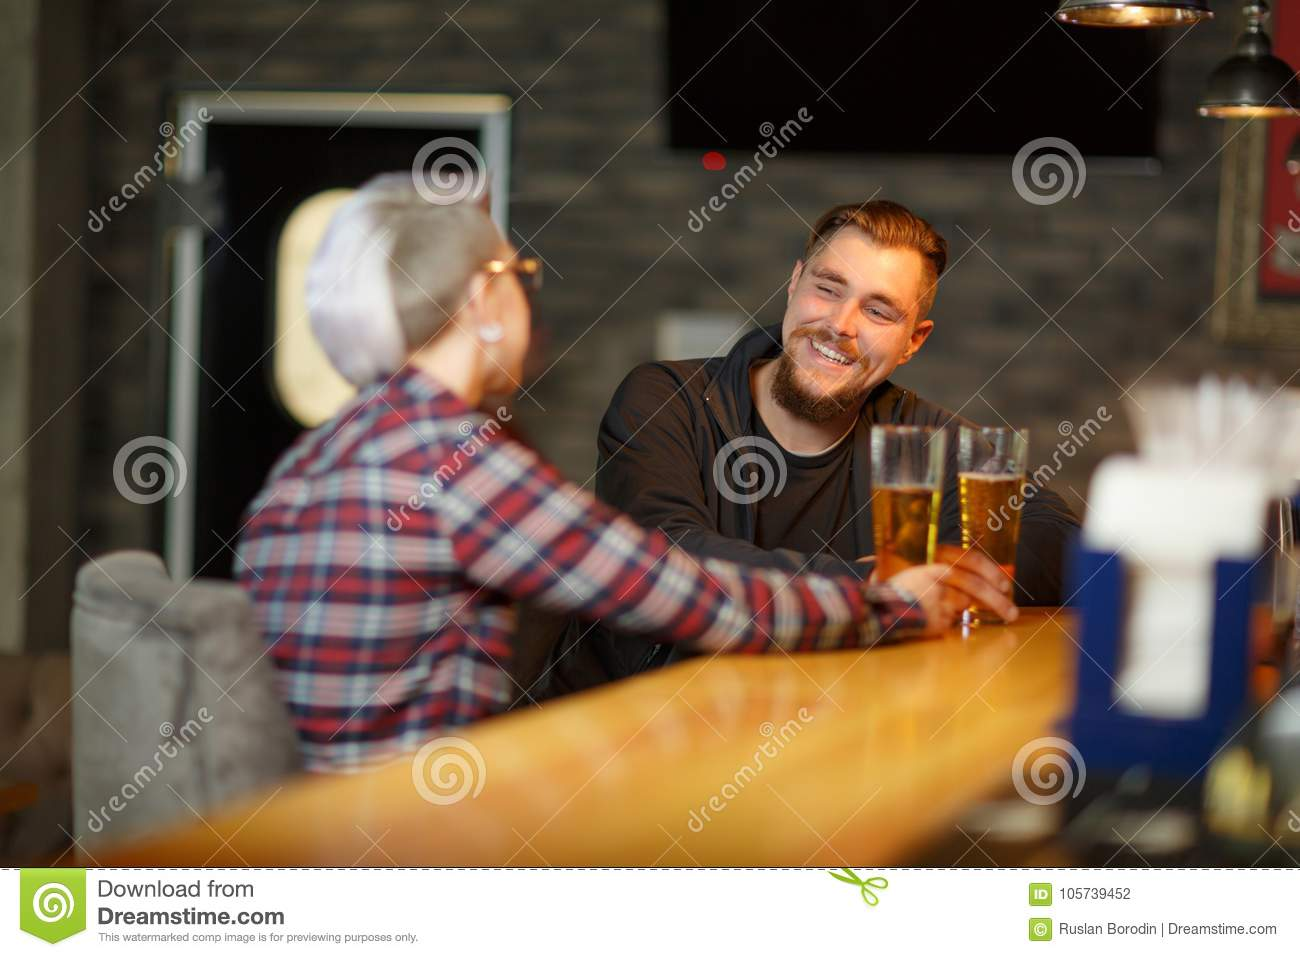 A happy guy, sitting and talking in a bar with a girl, drinking beer and laughing. Indoors.